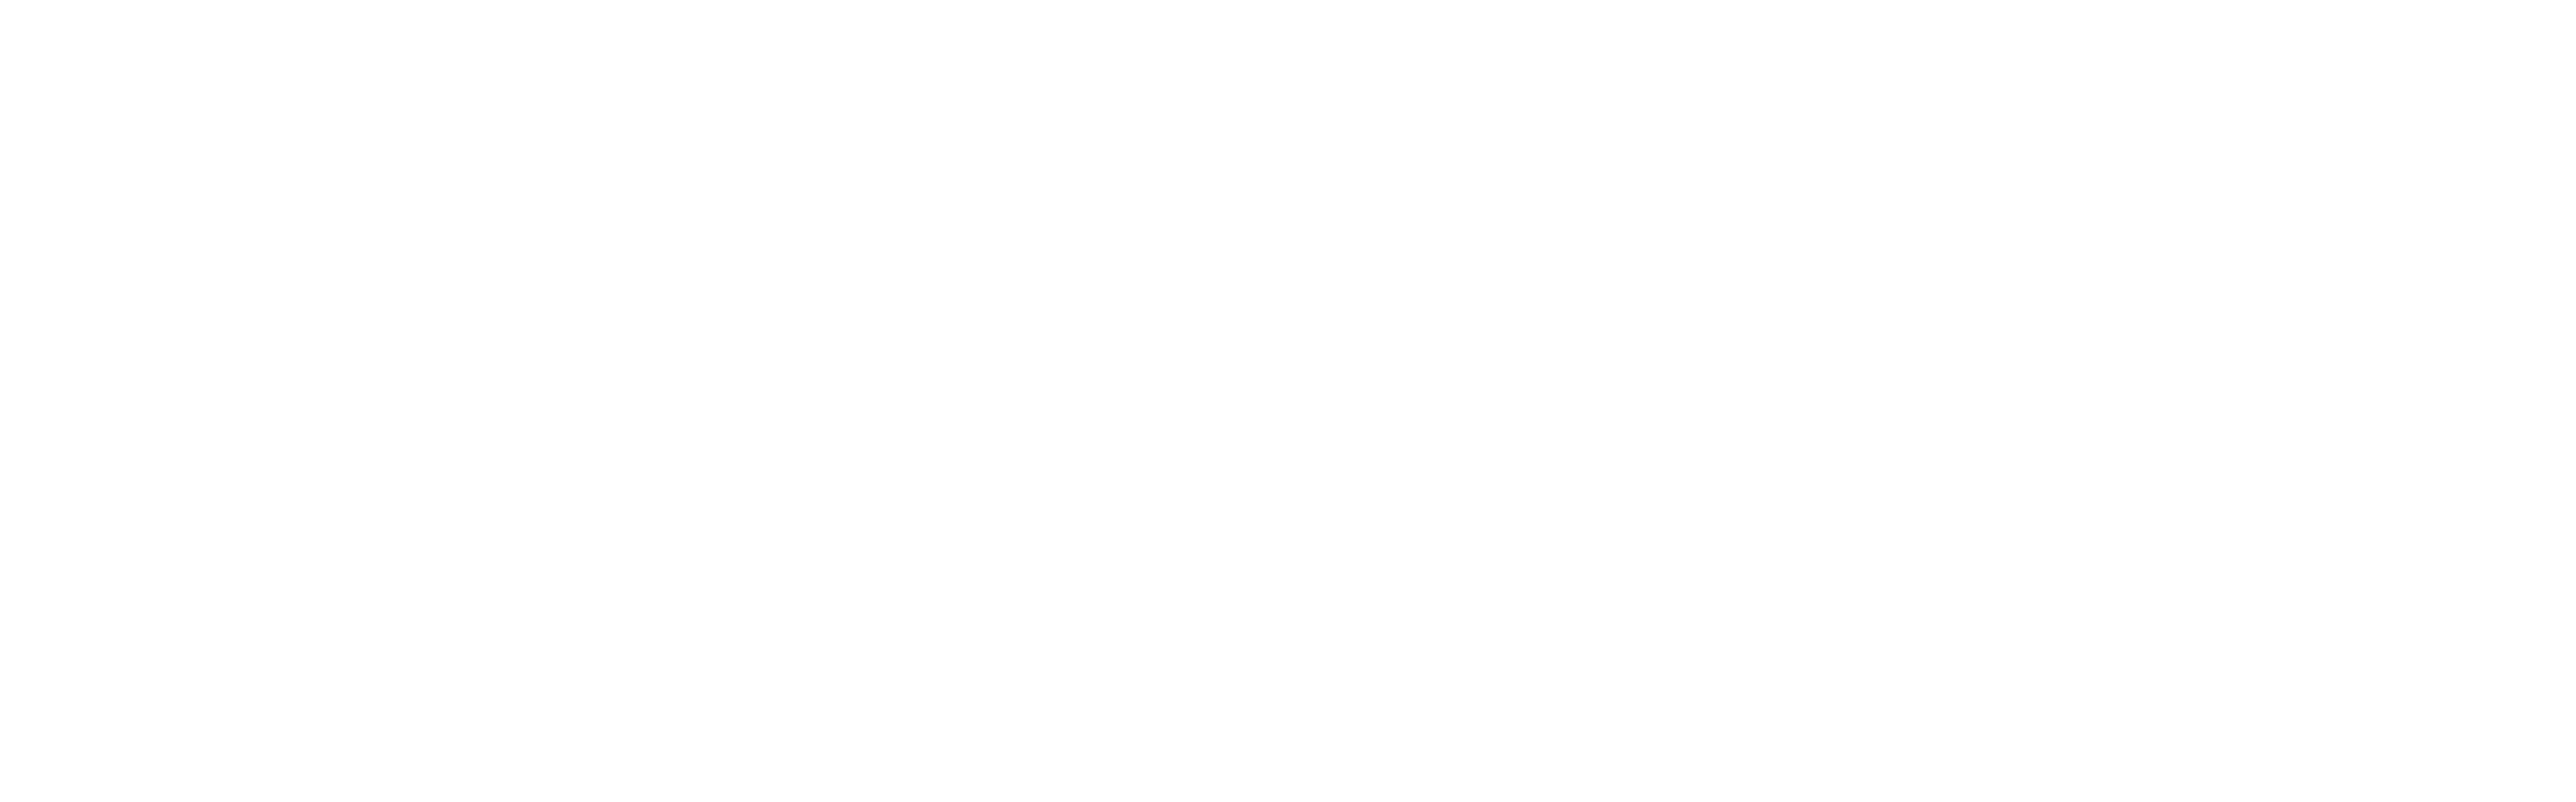 DSM Animal Nutrition and Health